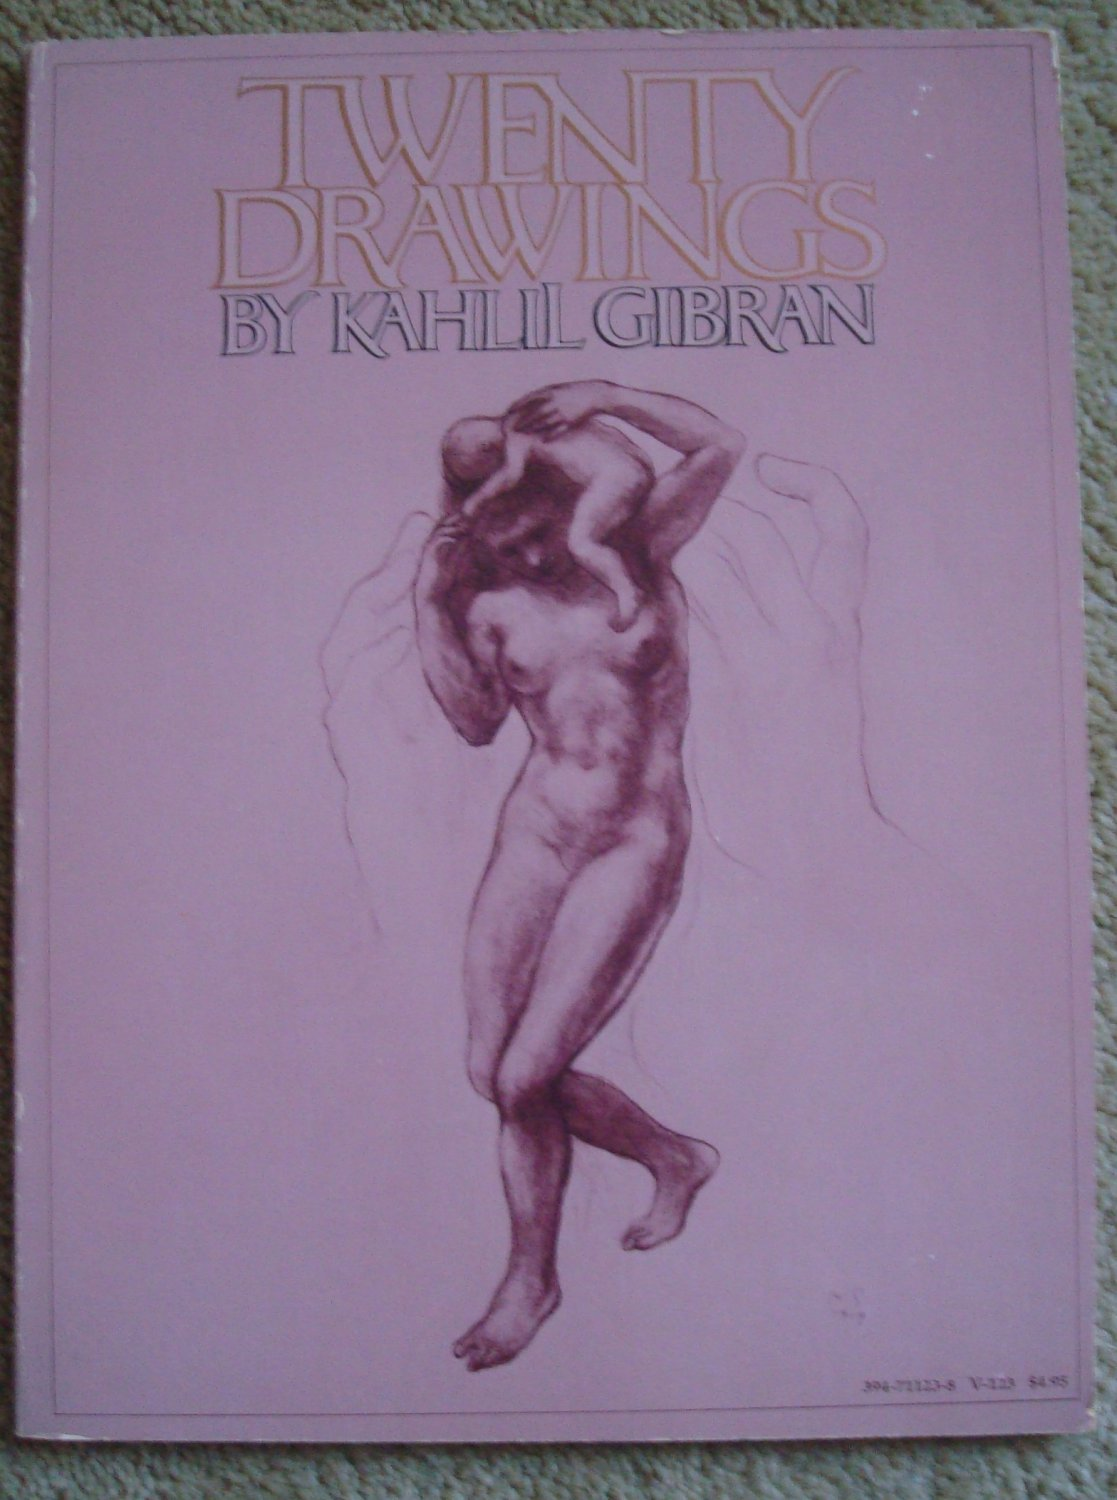 Twenty Drawings by Kahlil Gibran